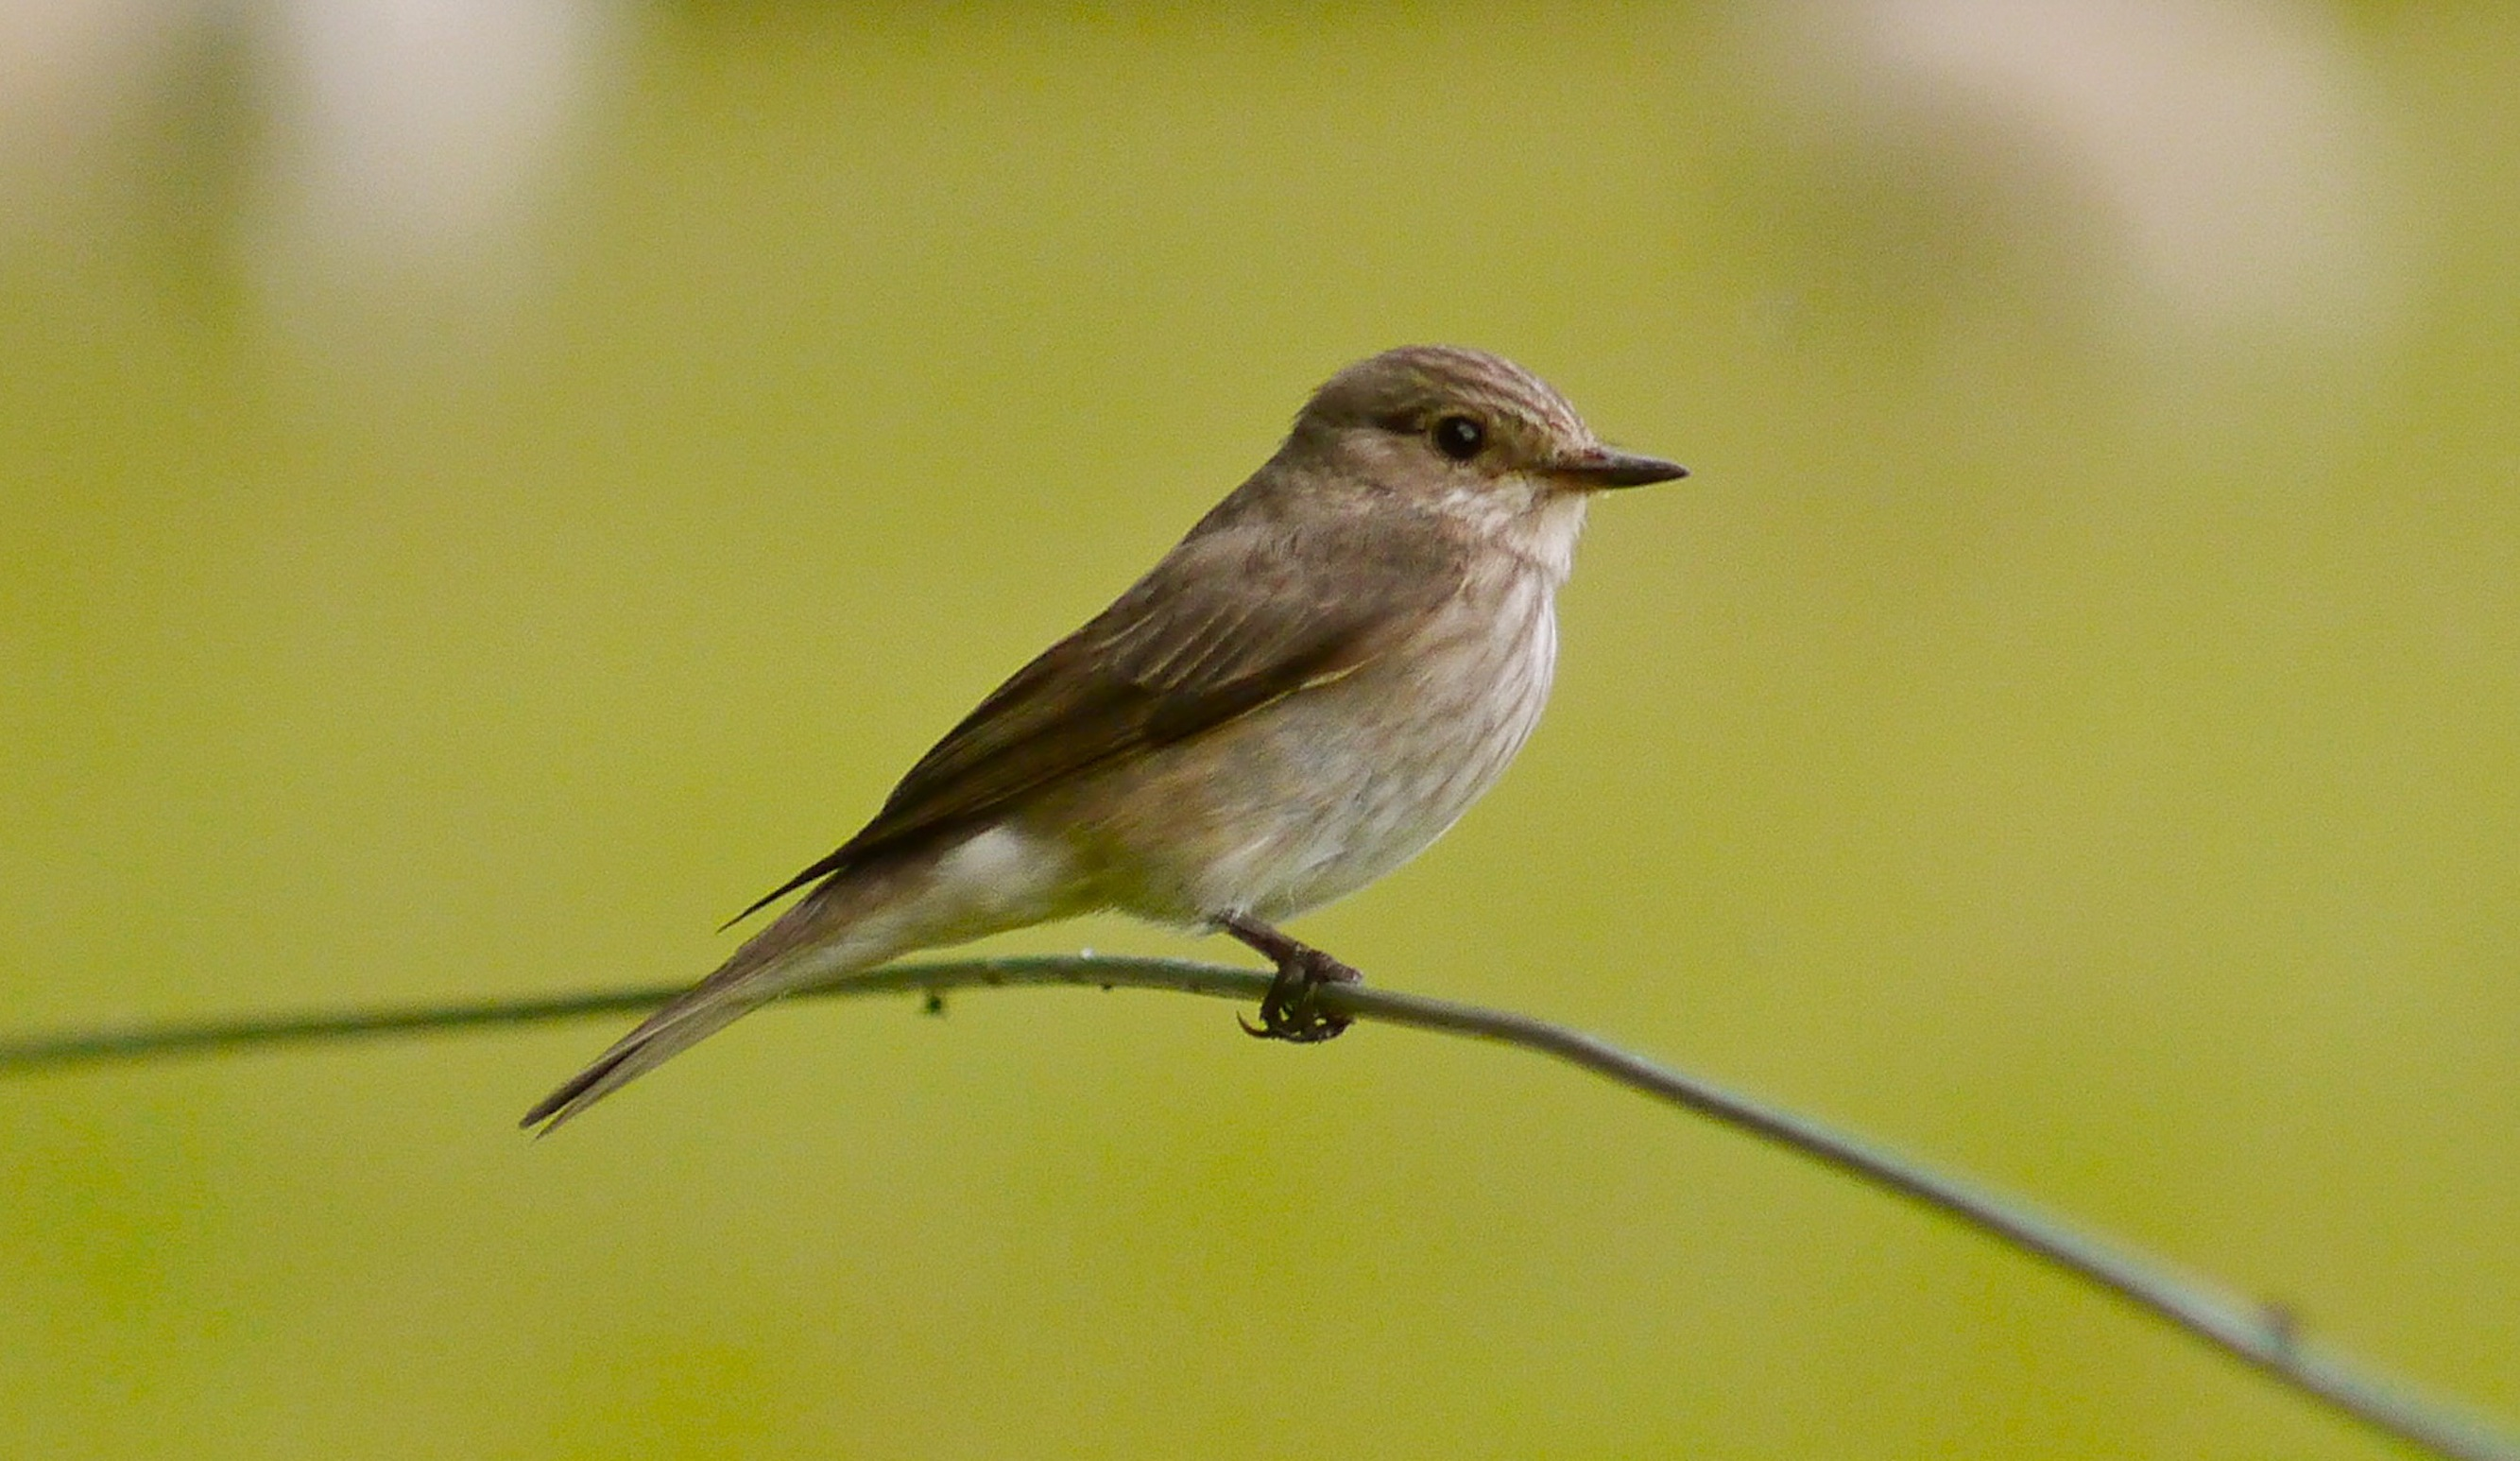 The flycatcher and the fly